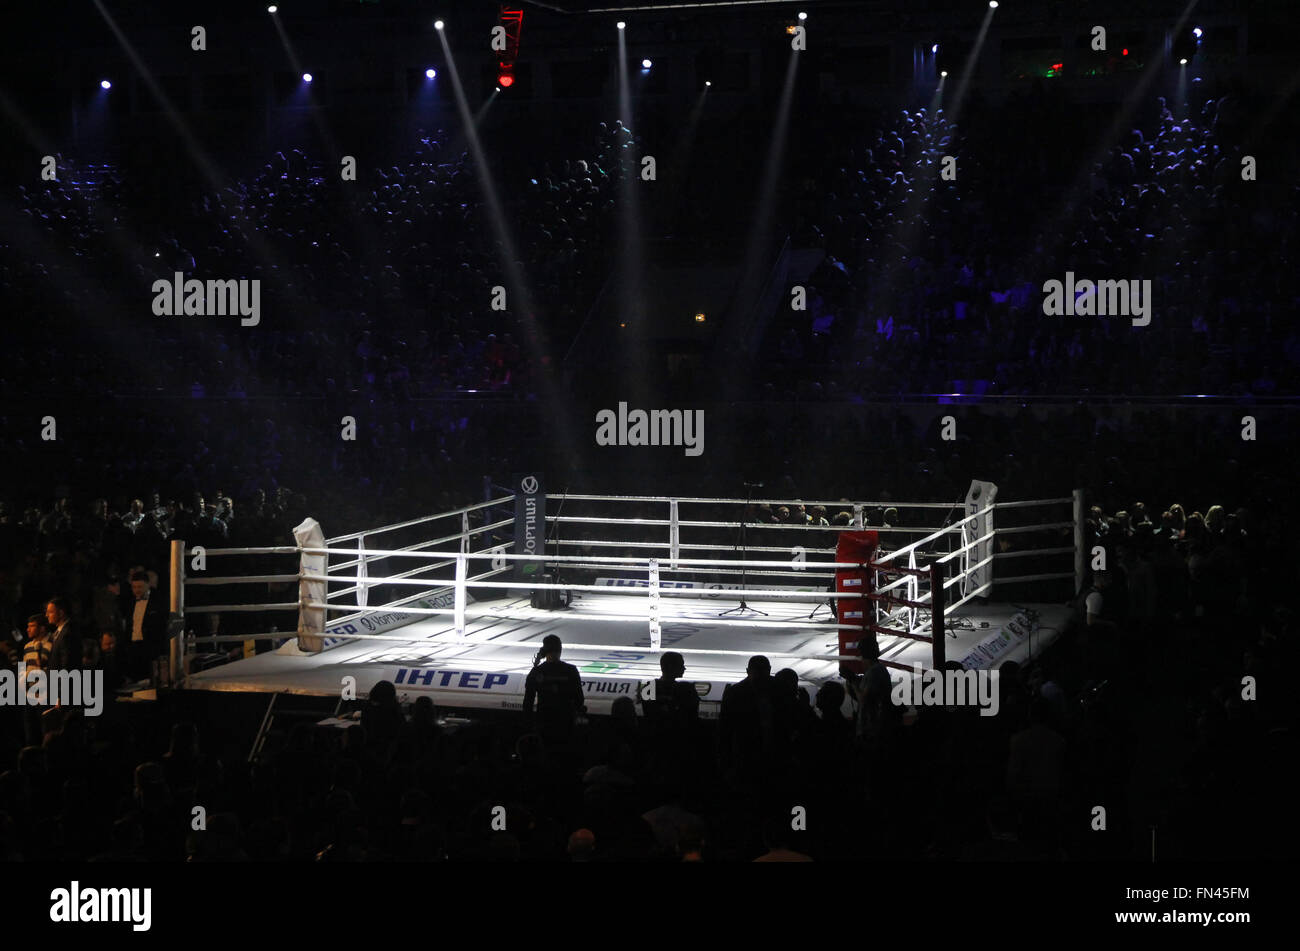 KYIV, UKRAINE - DECEMBER 13, 2014: Boxing ring in Palace of Sports in Kyiv during 'Evening of Boxing' - Stock Image